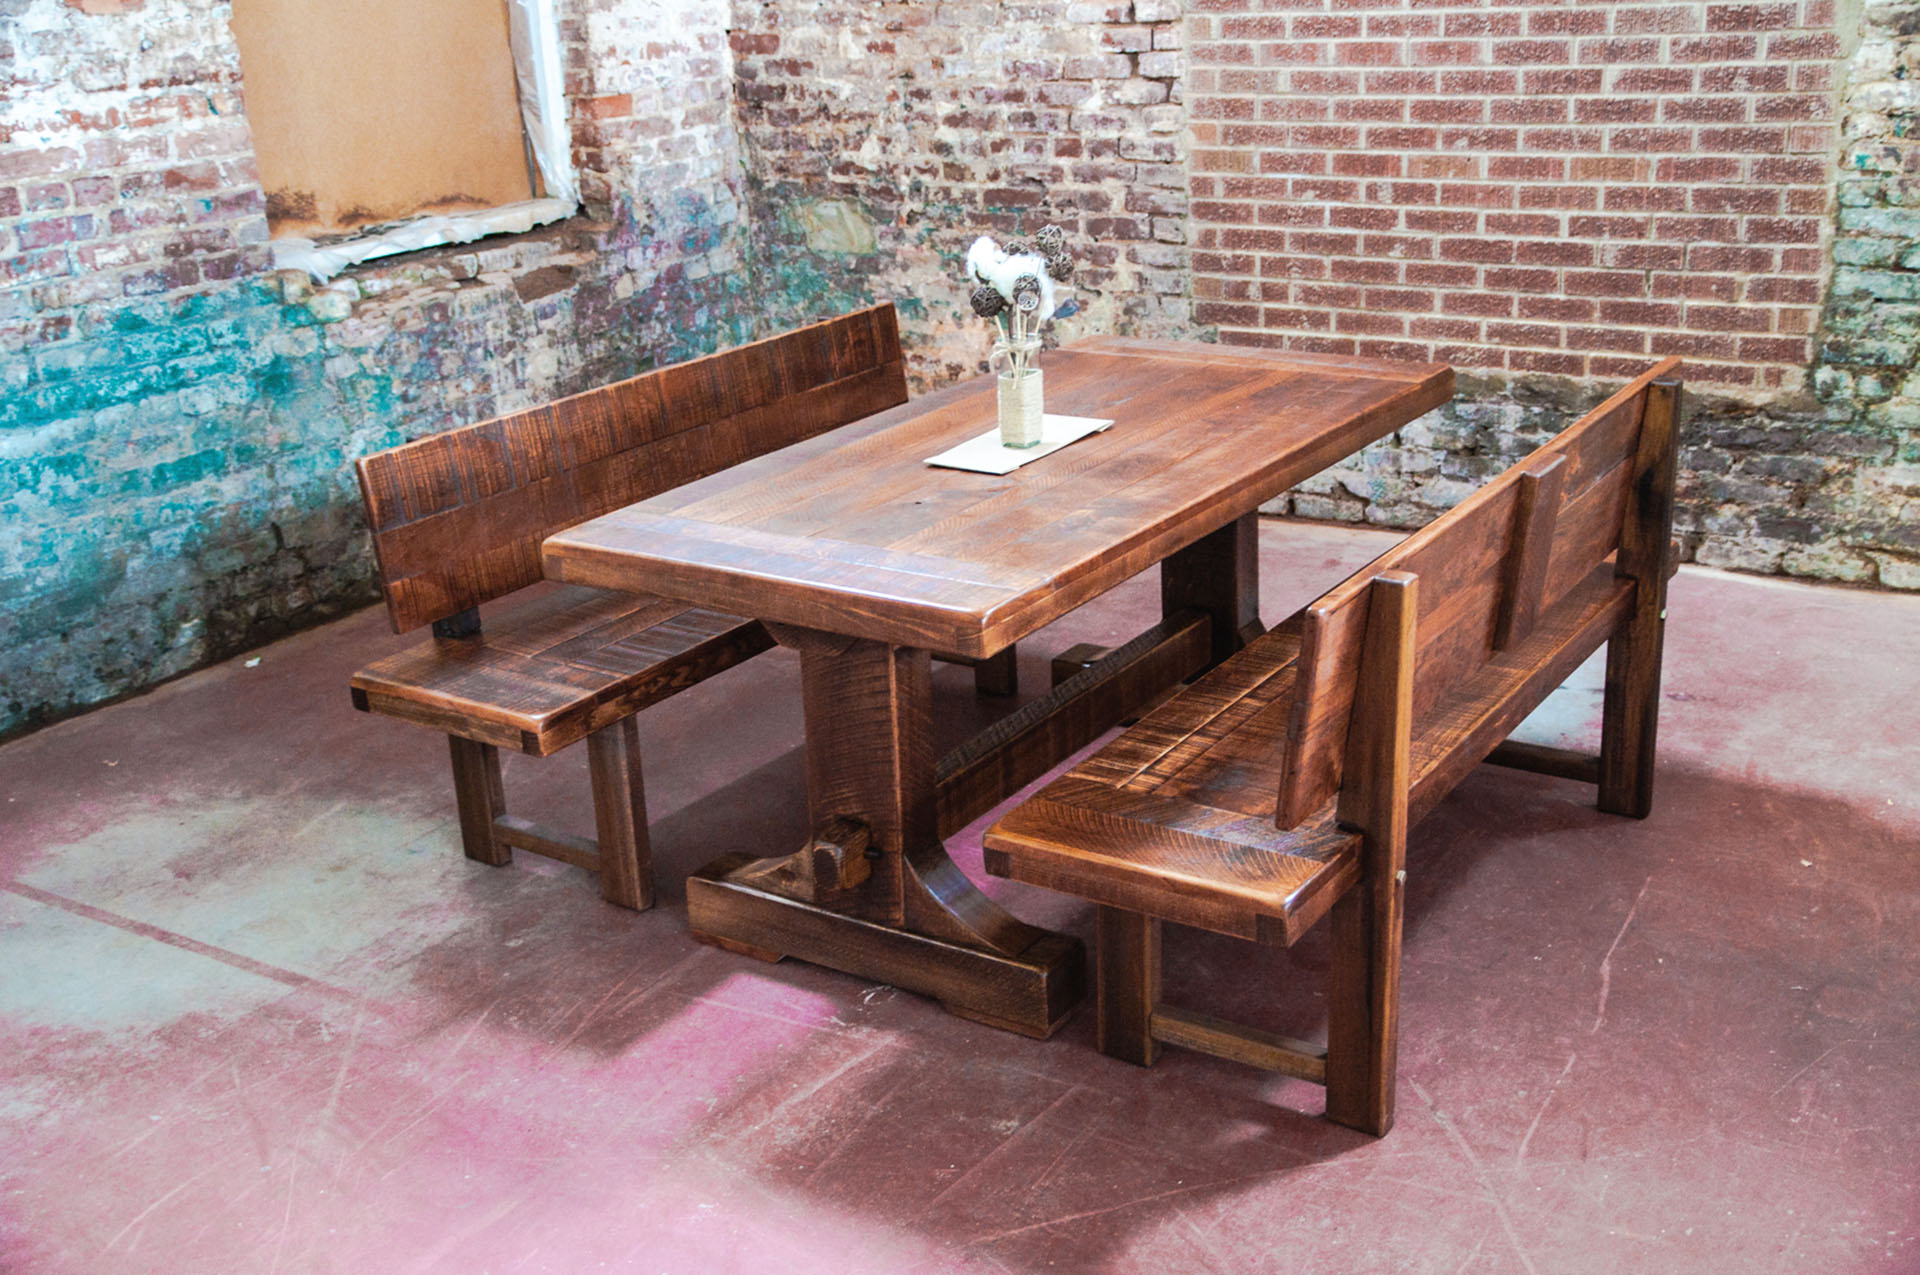 Long Skinny Dining Tables Narrow Dining Table With Bench For Small Spaces